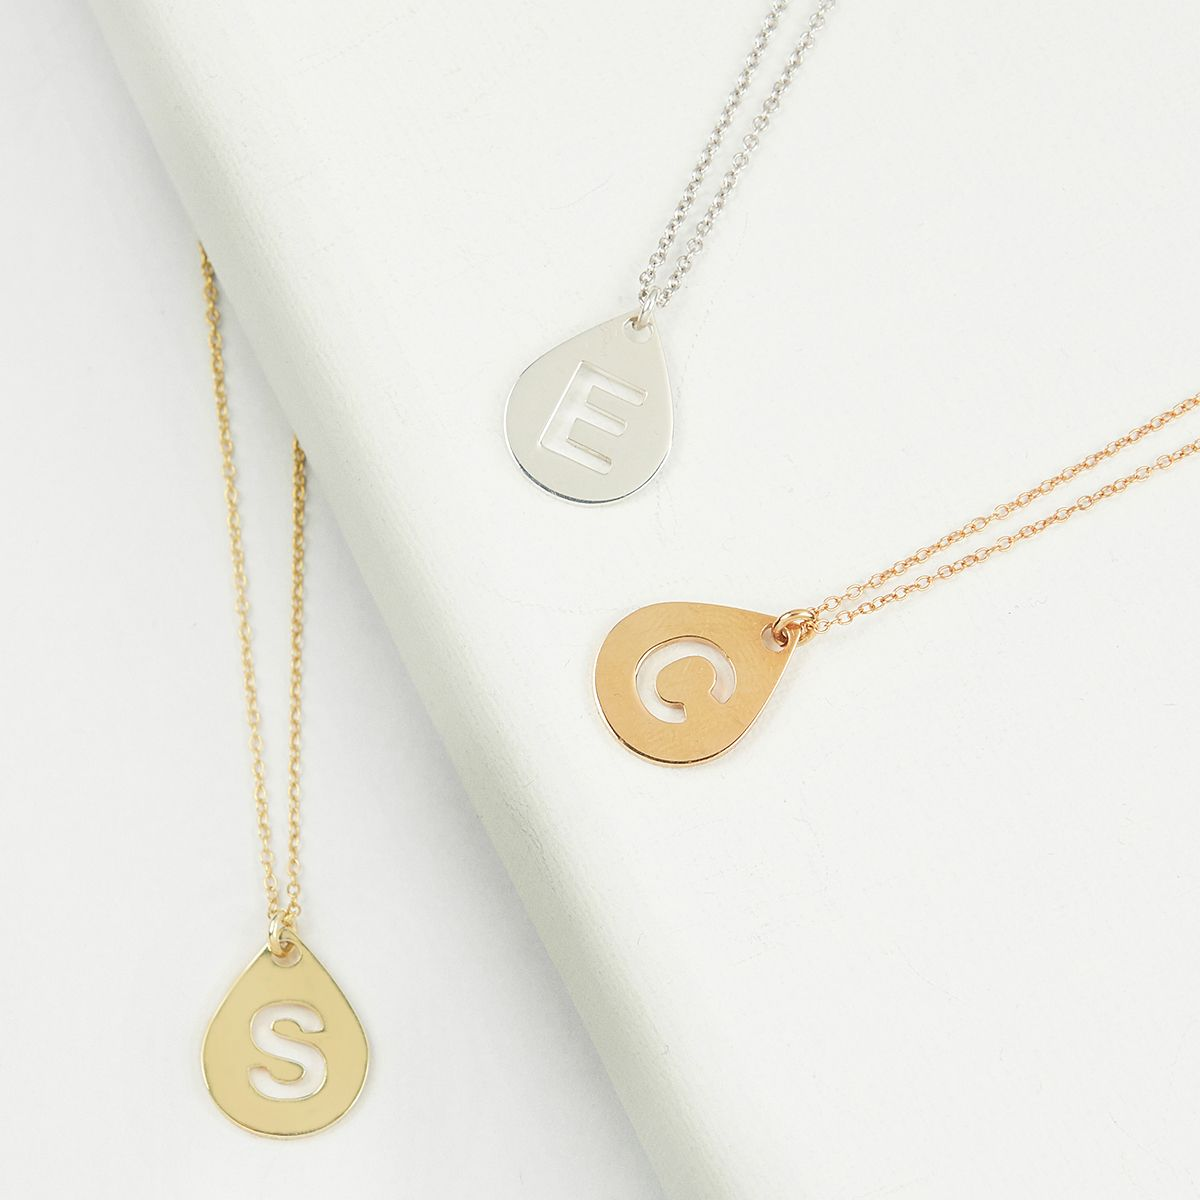 Personlasied initial necklace beautiful personalised gift